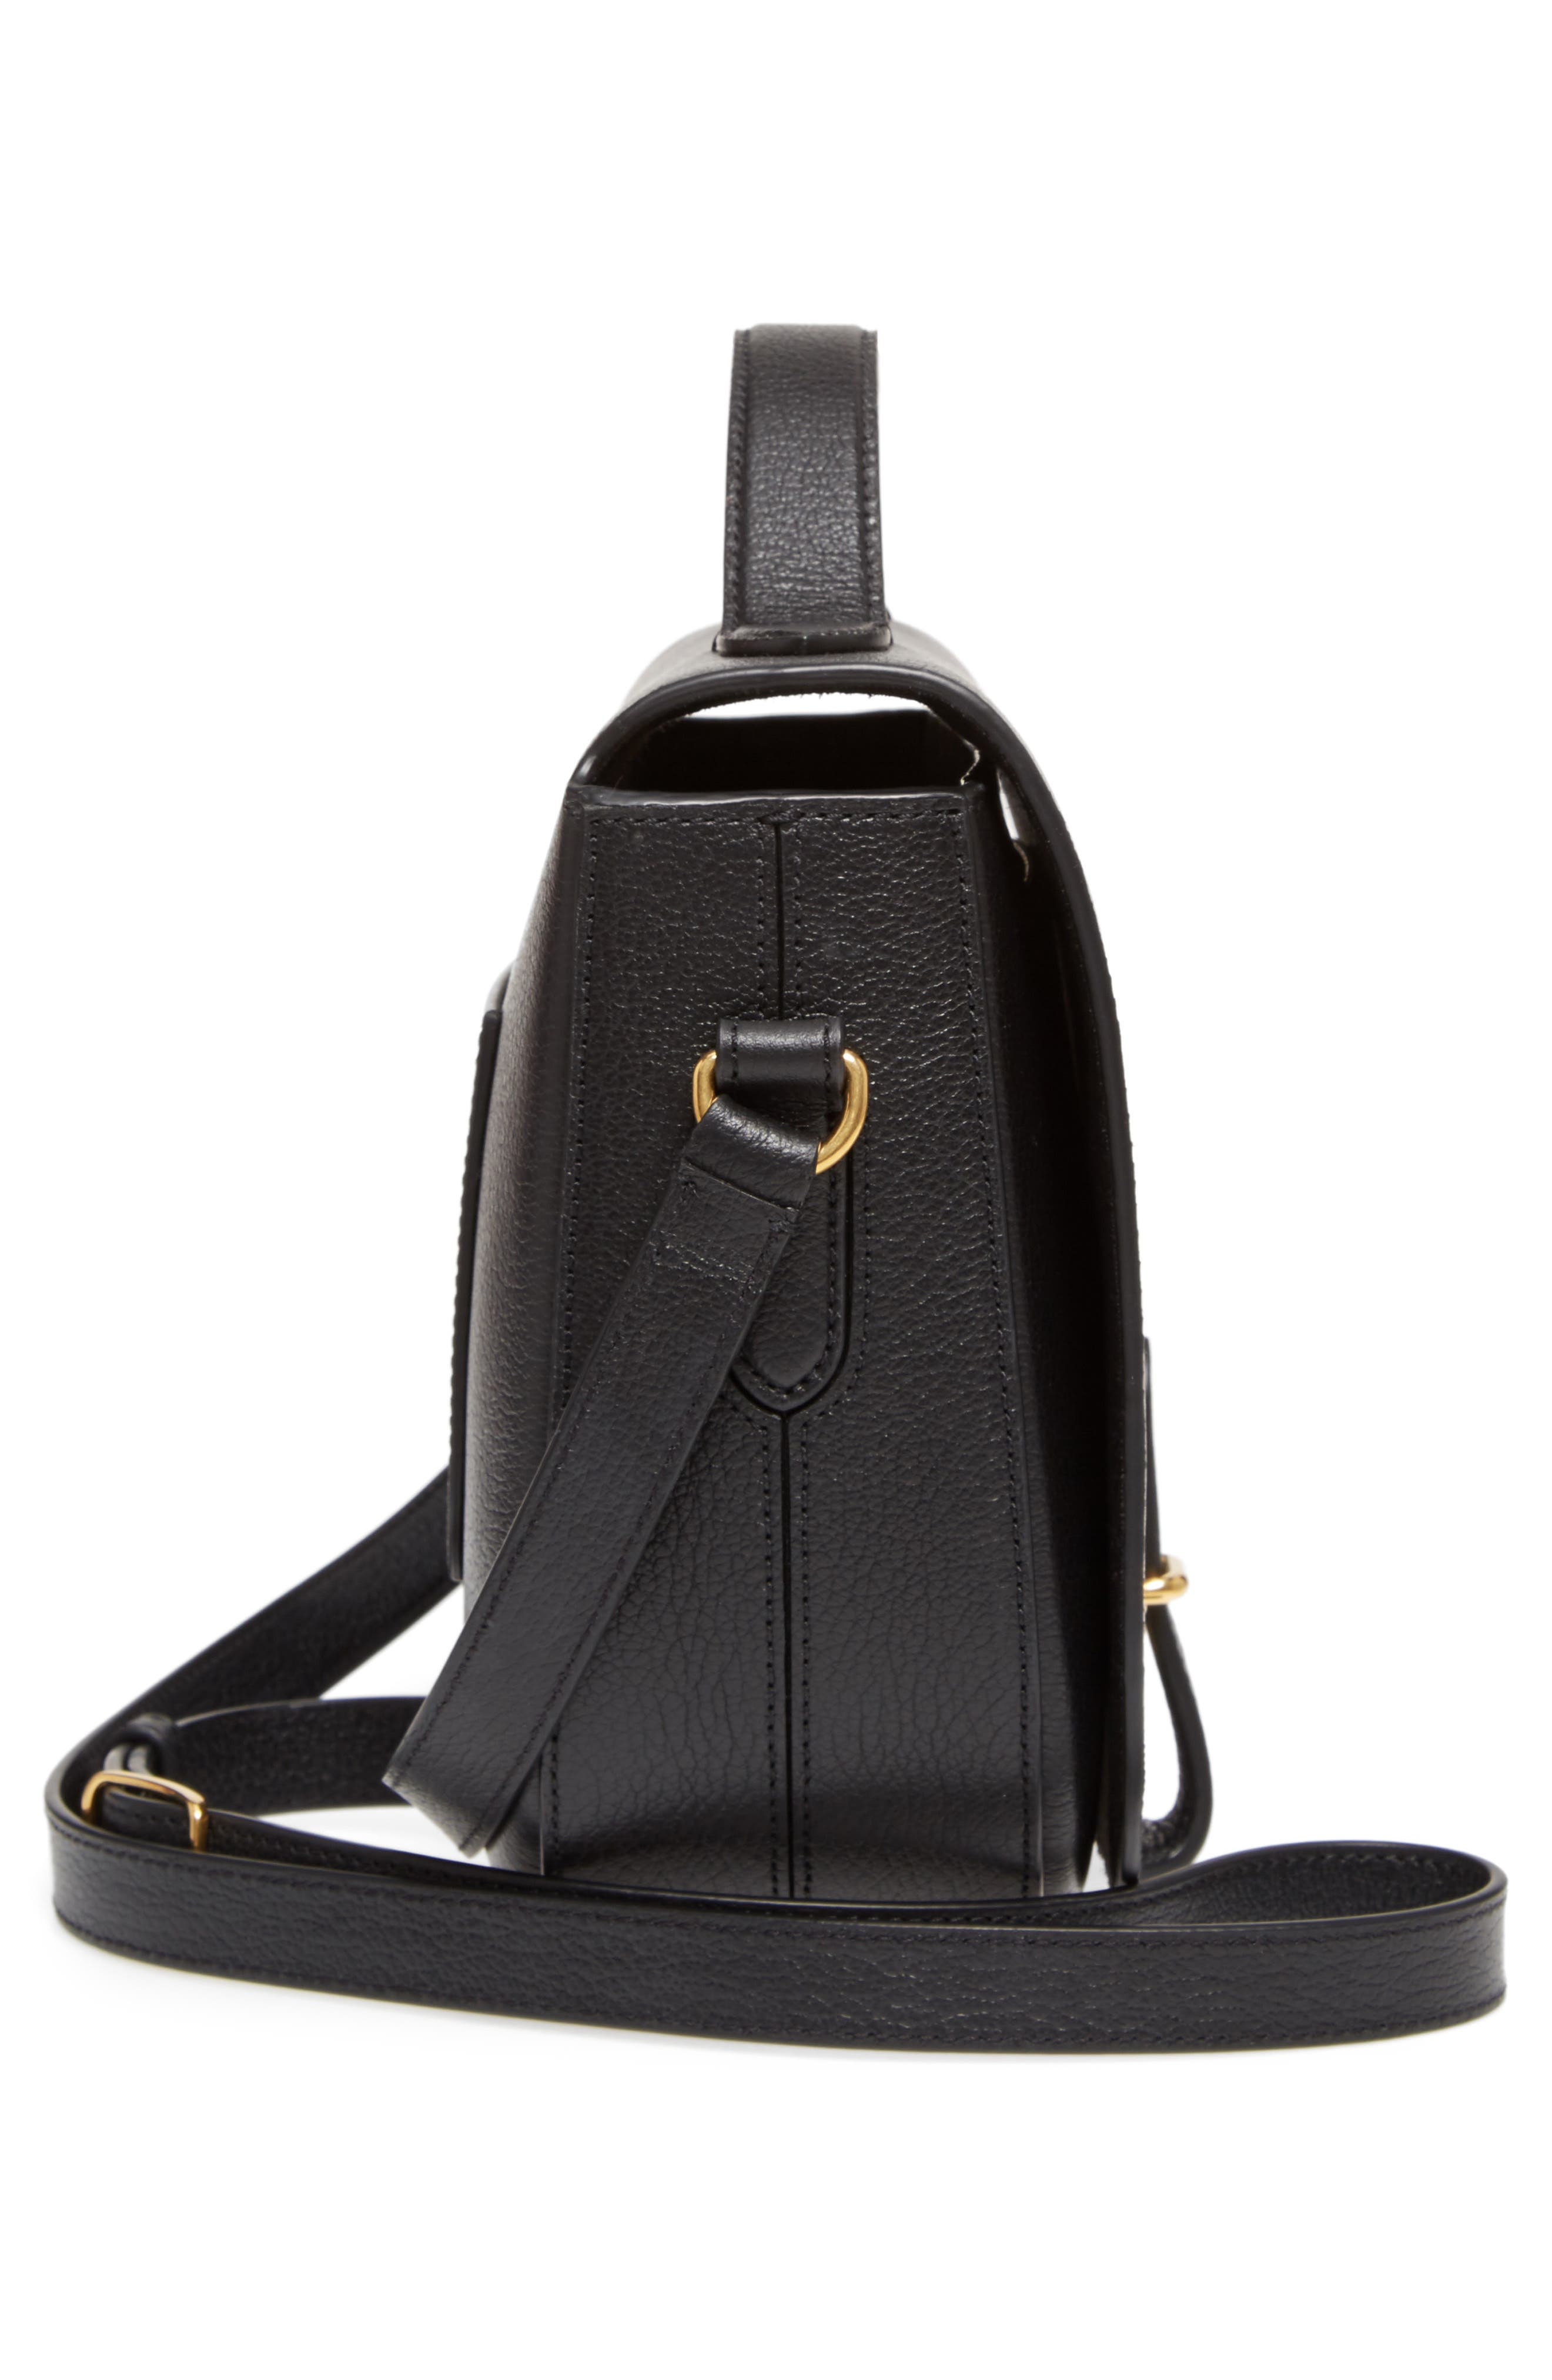 Tenby Calfskin Leather Crossbody Bag,                             Alternate thumbnail 5, color,                             Black